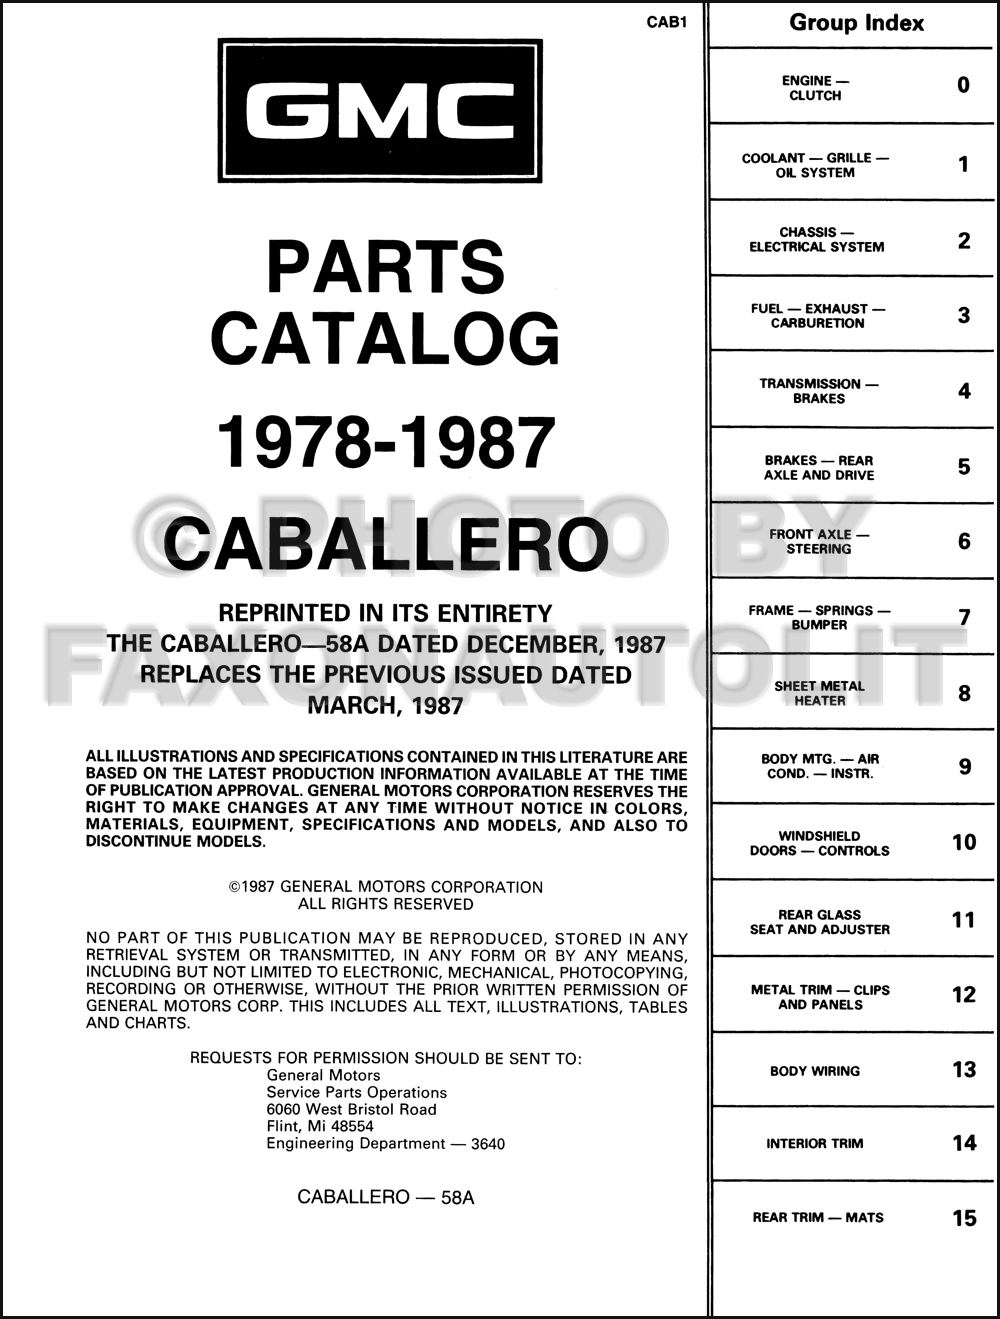 1978 1985 Gmc Caballero Parts Book Original 1983 Wiring Diagram Click On Thumbnail To Zoom